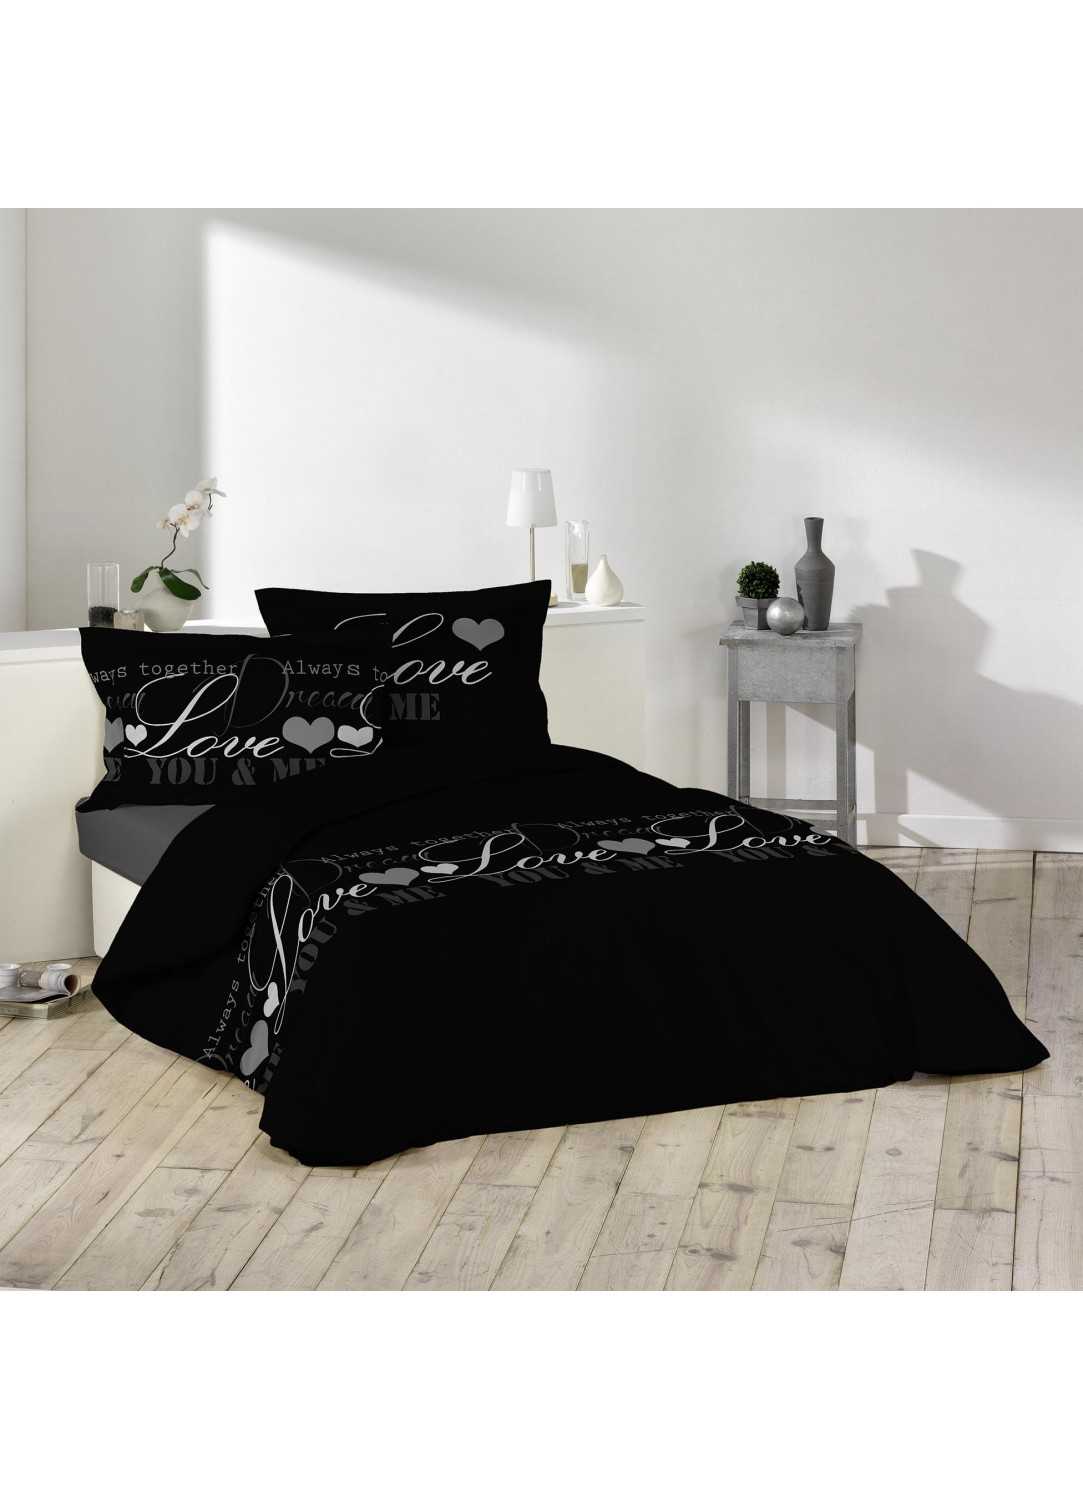 parure de lit imprim e love multicolors homemaison vente en ligne parures de lit. Black Bedroom Furniture Sets. Home Design Ideas